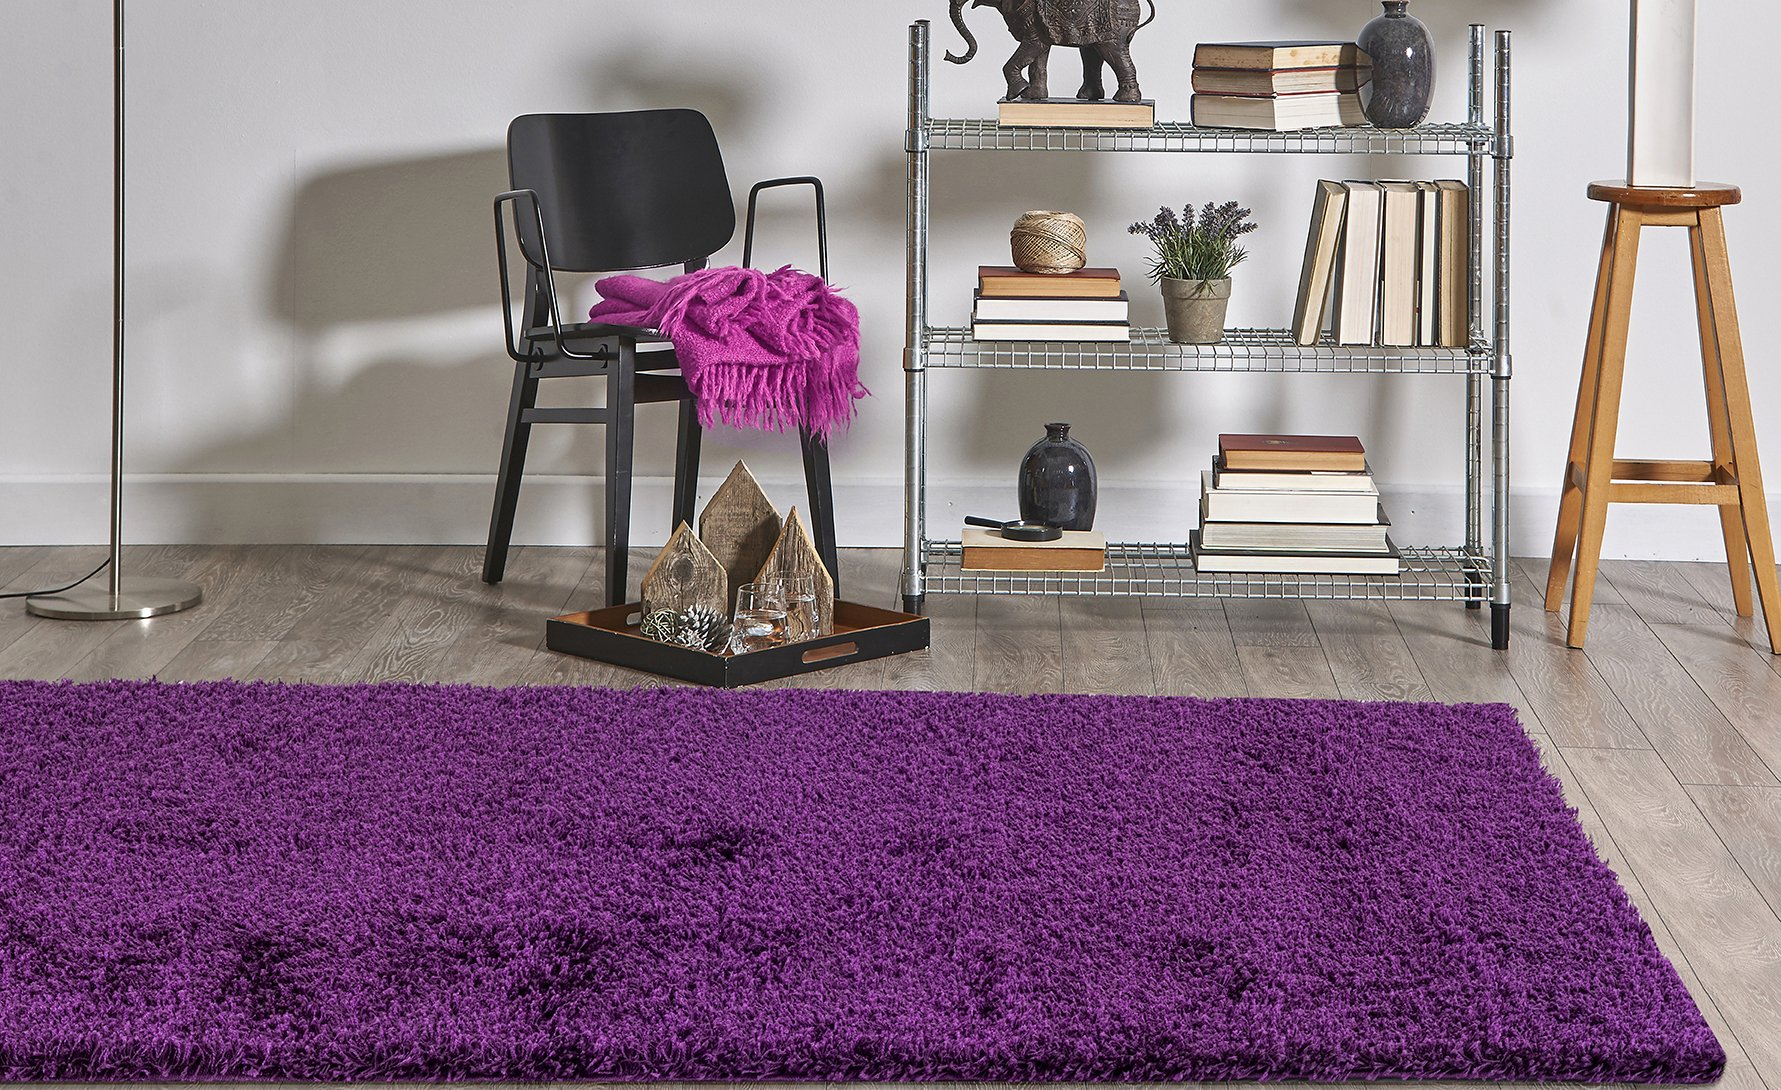 Homedora Solid Shaggy Area Rug Vivid Soft & High Pile, Thick Plush Bedroom Living Dining Kids Shag Floor Rug Purple 3' x 5'